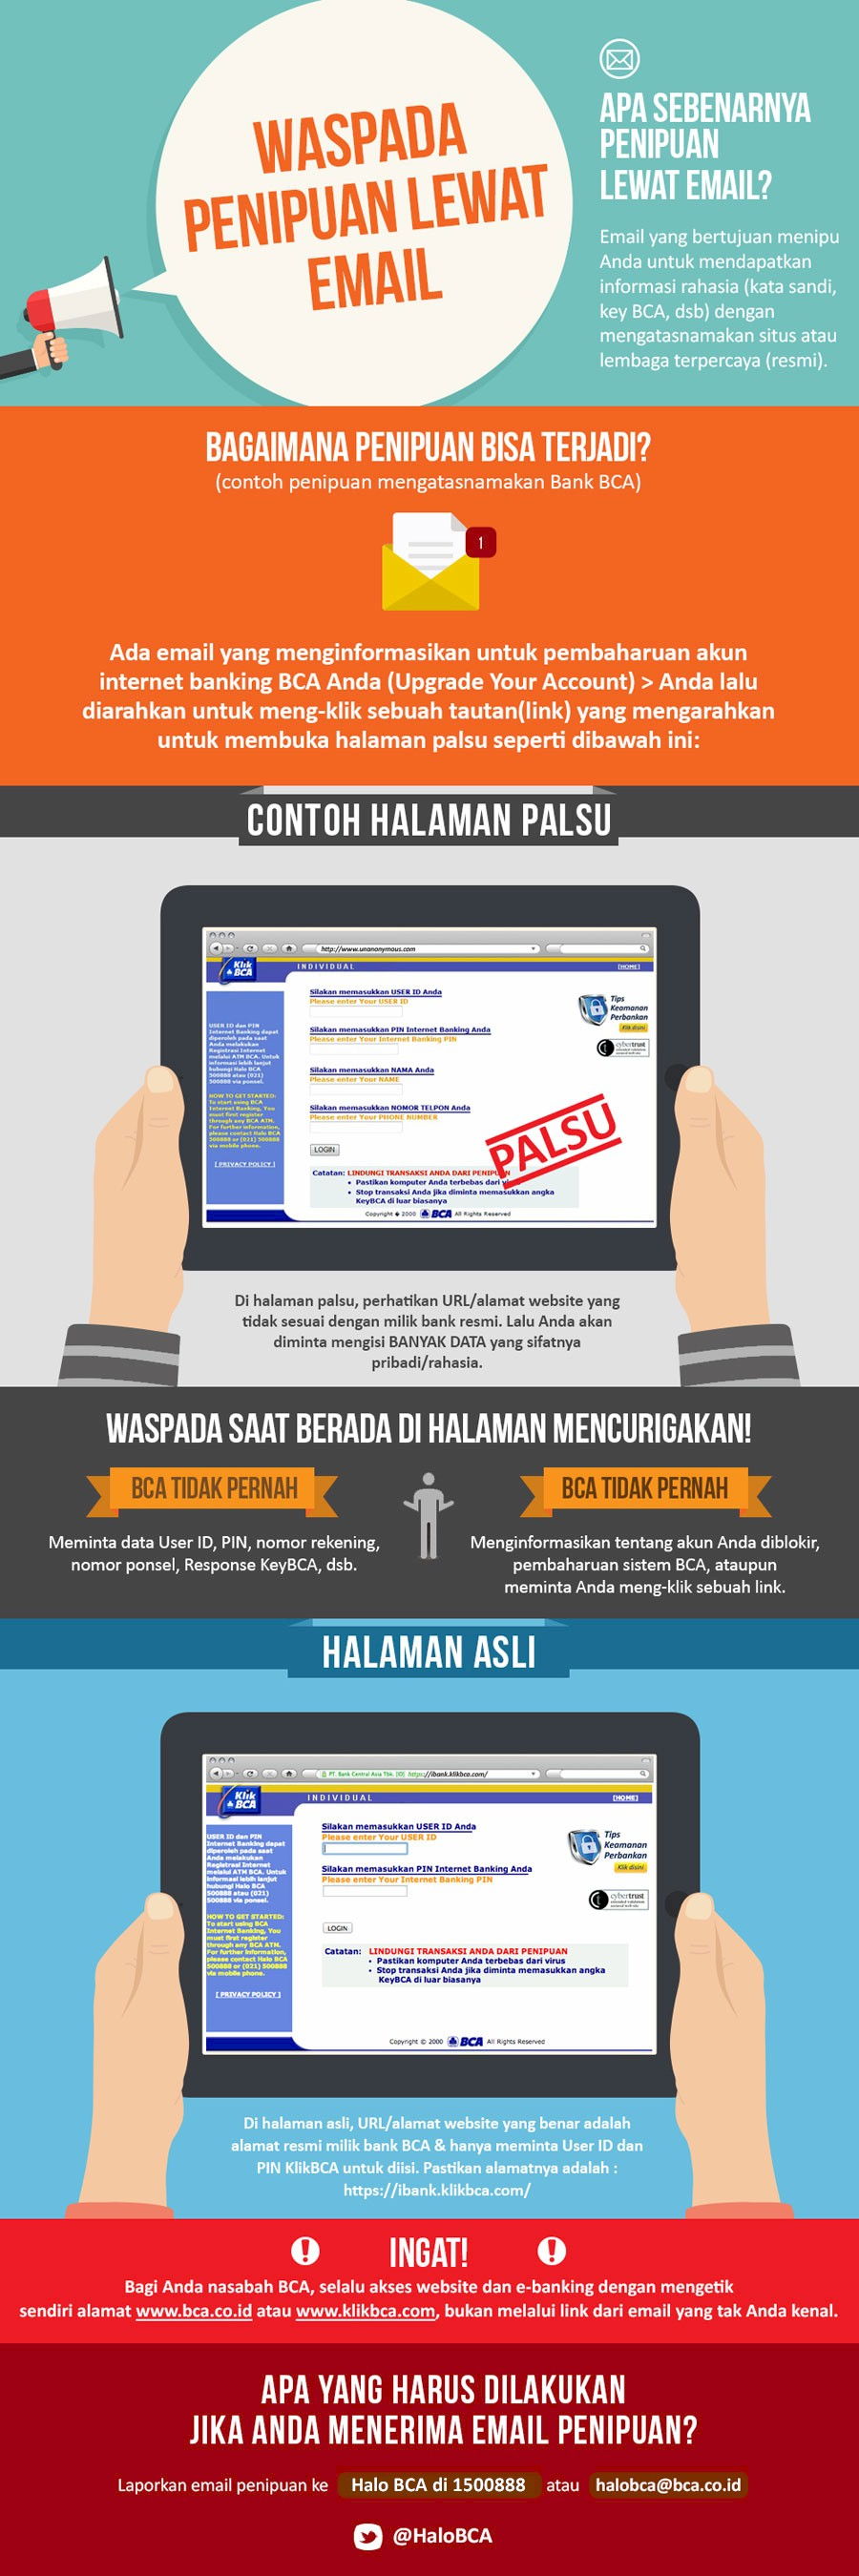 2014Aug_EmailPhising